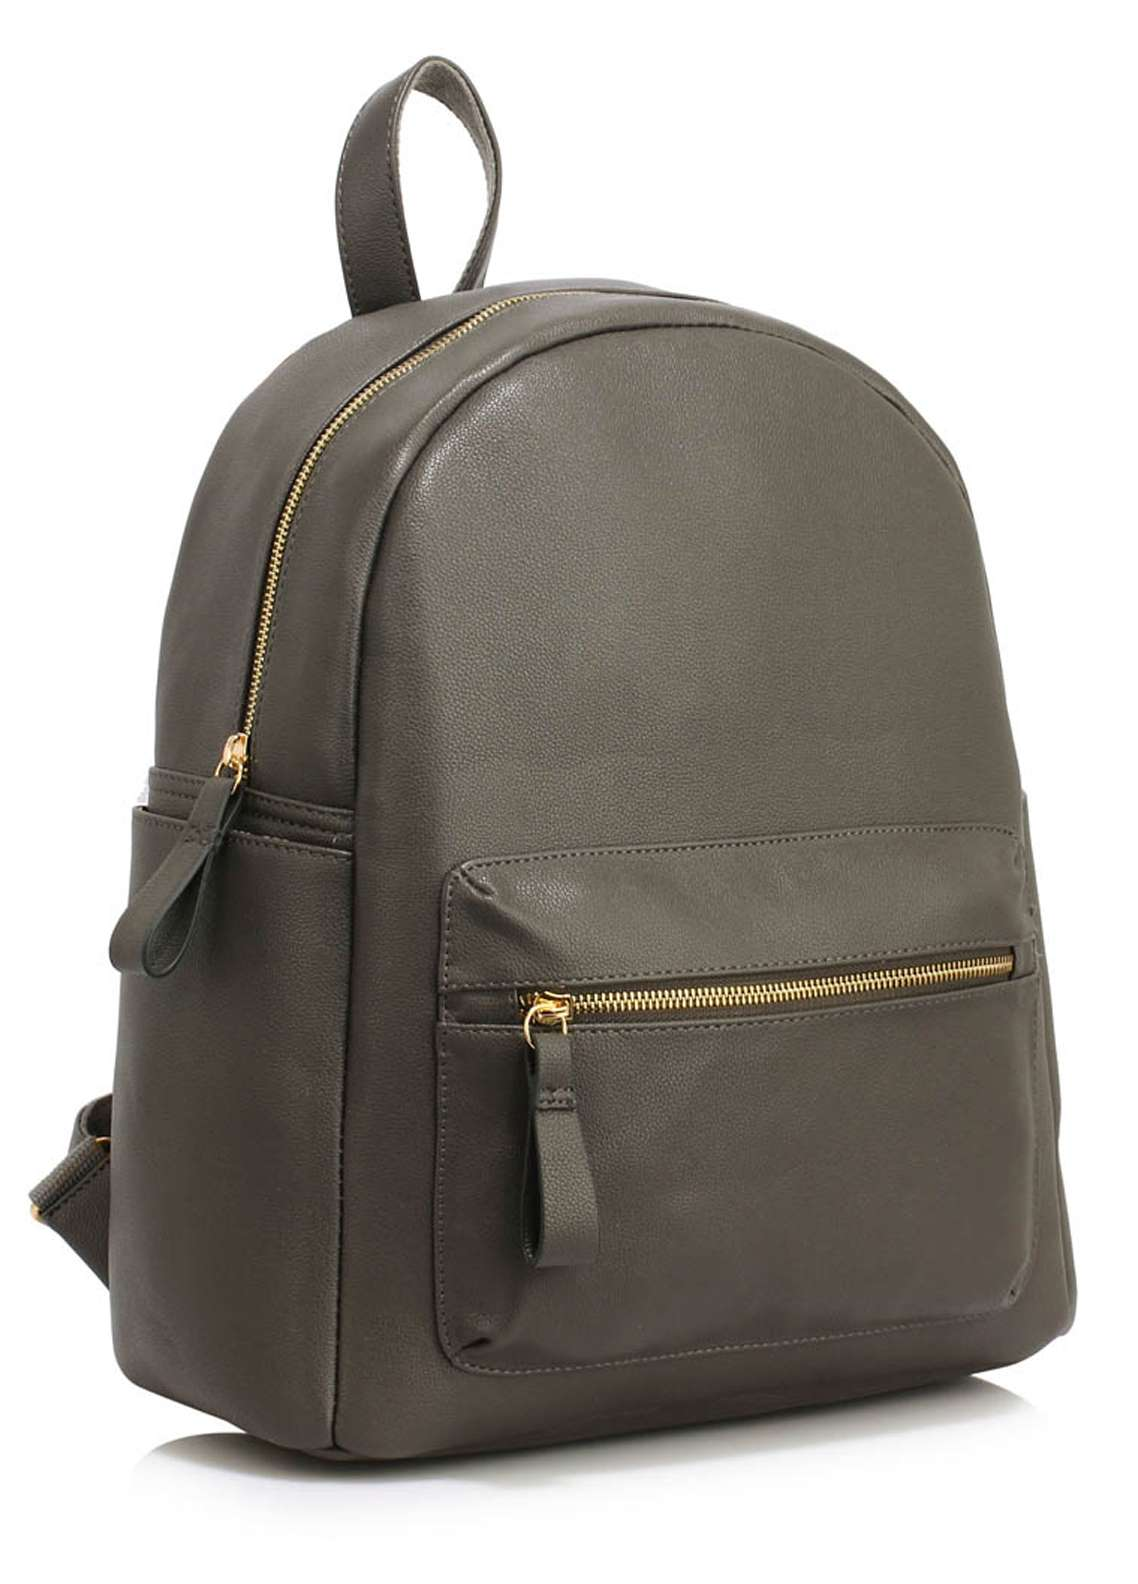 Leesun London Soft Faux Leather Backpack Bags  for Unisex  Grey with Plain Texture